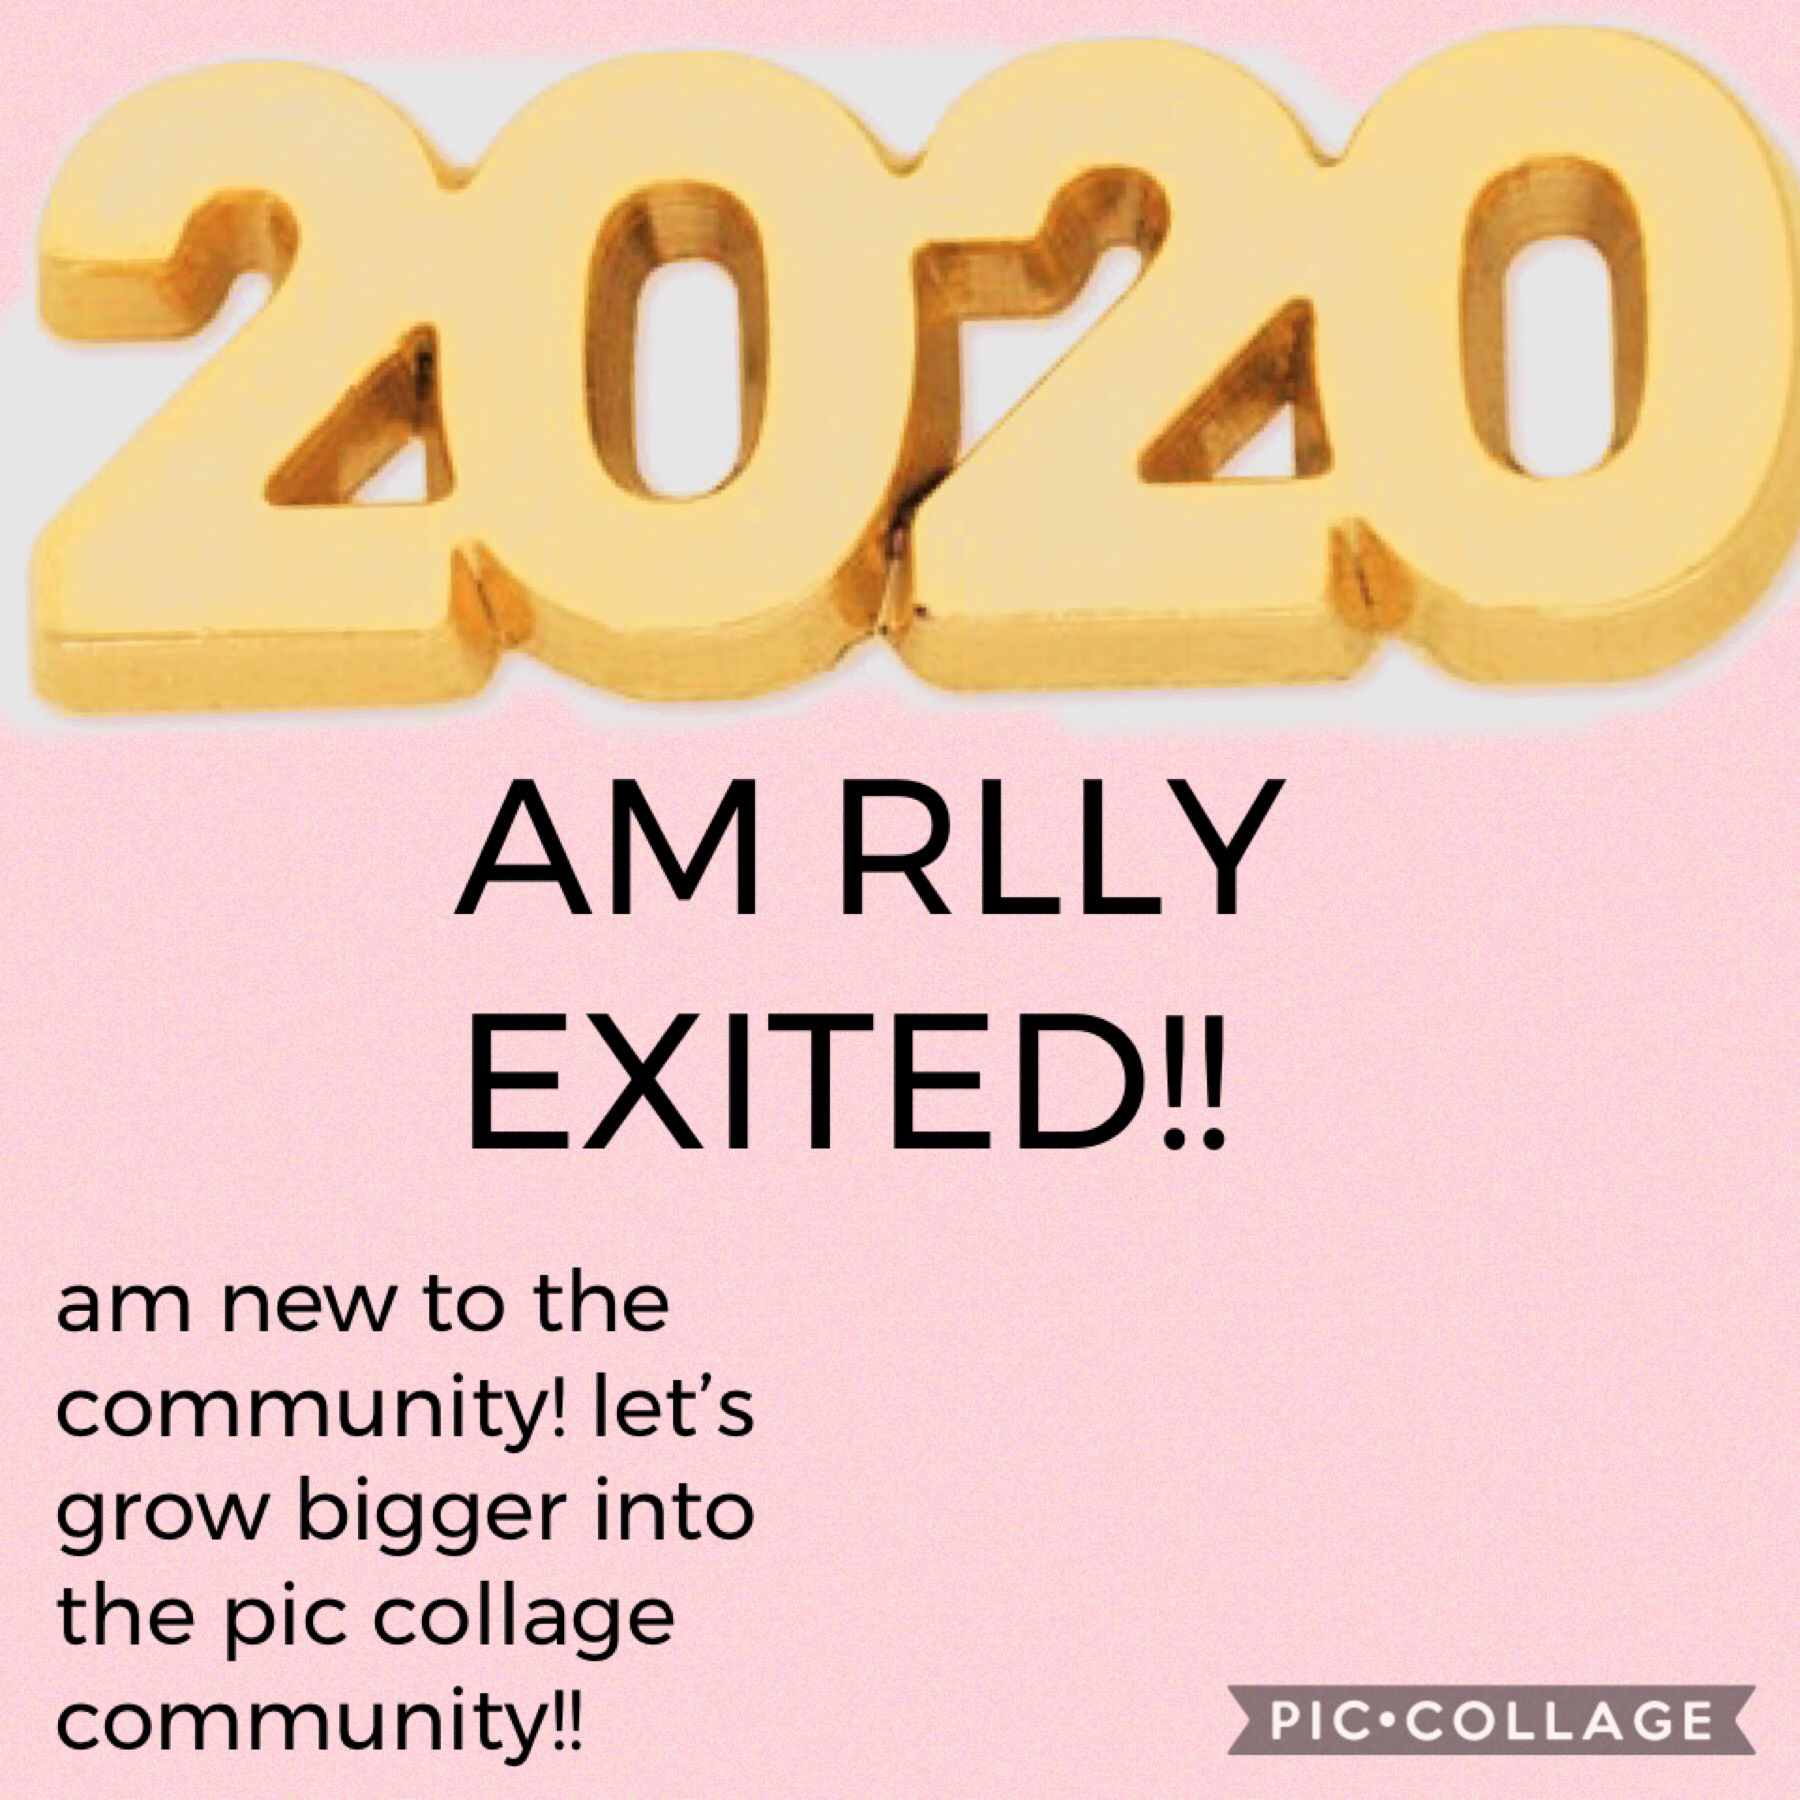 am rlly exited for 2020!!! am new so go head and follow me!!!